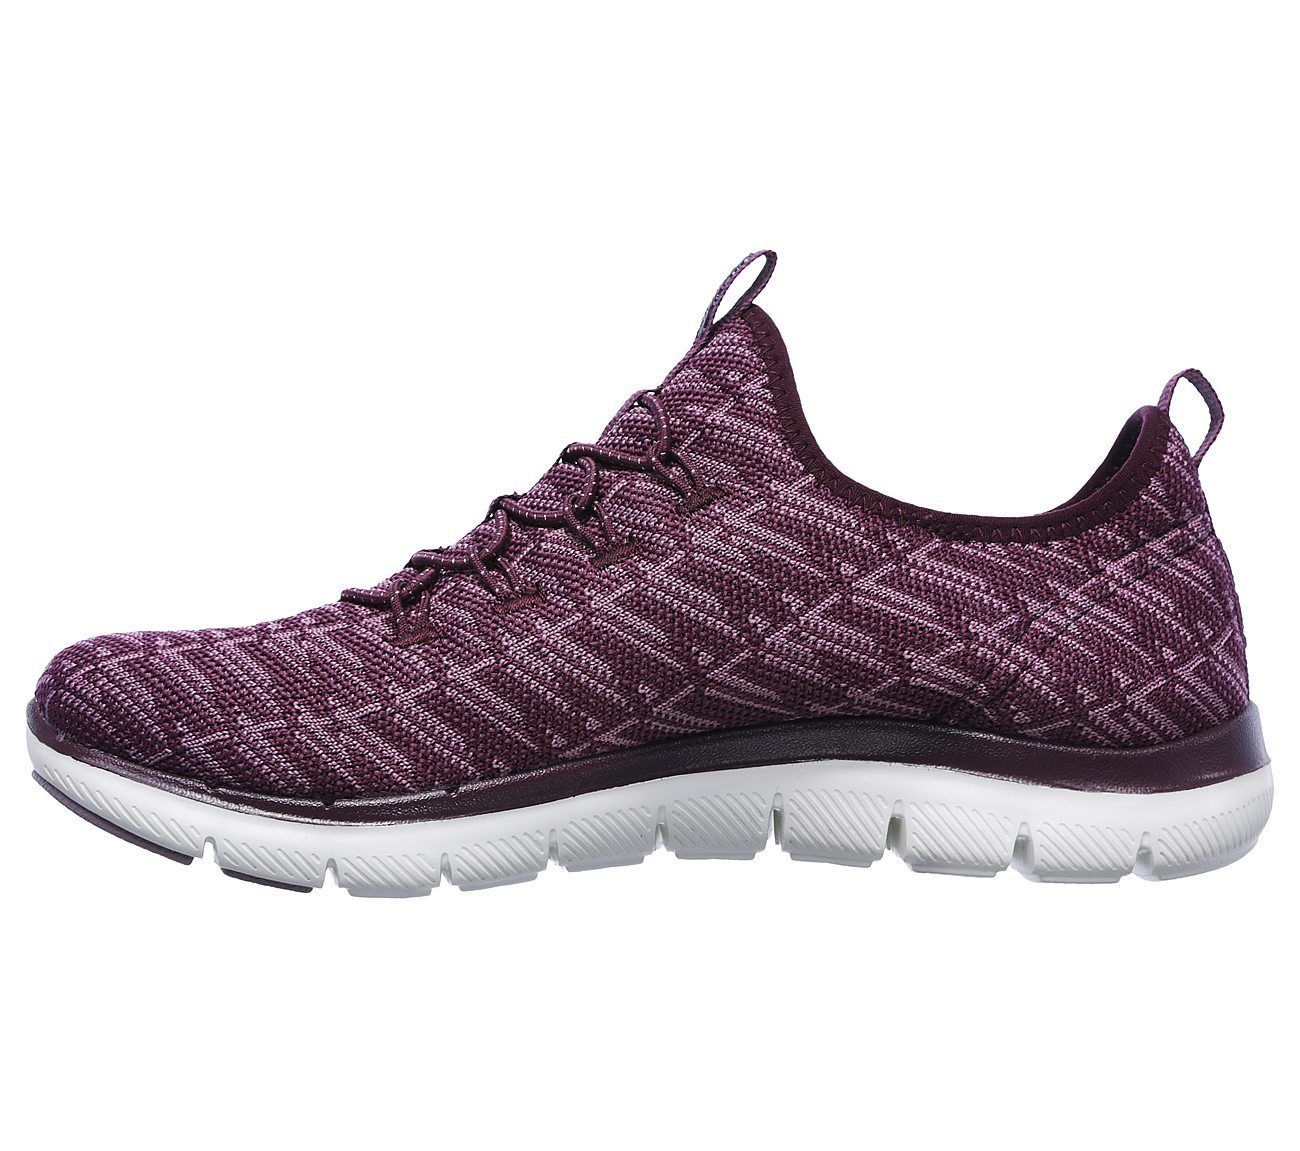 Skechers Flex Appeal 2.0 Insights Plum Womens Slip On Walking Shoes 12765/PLUM